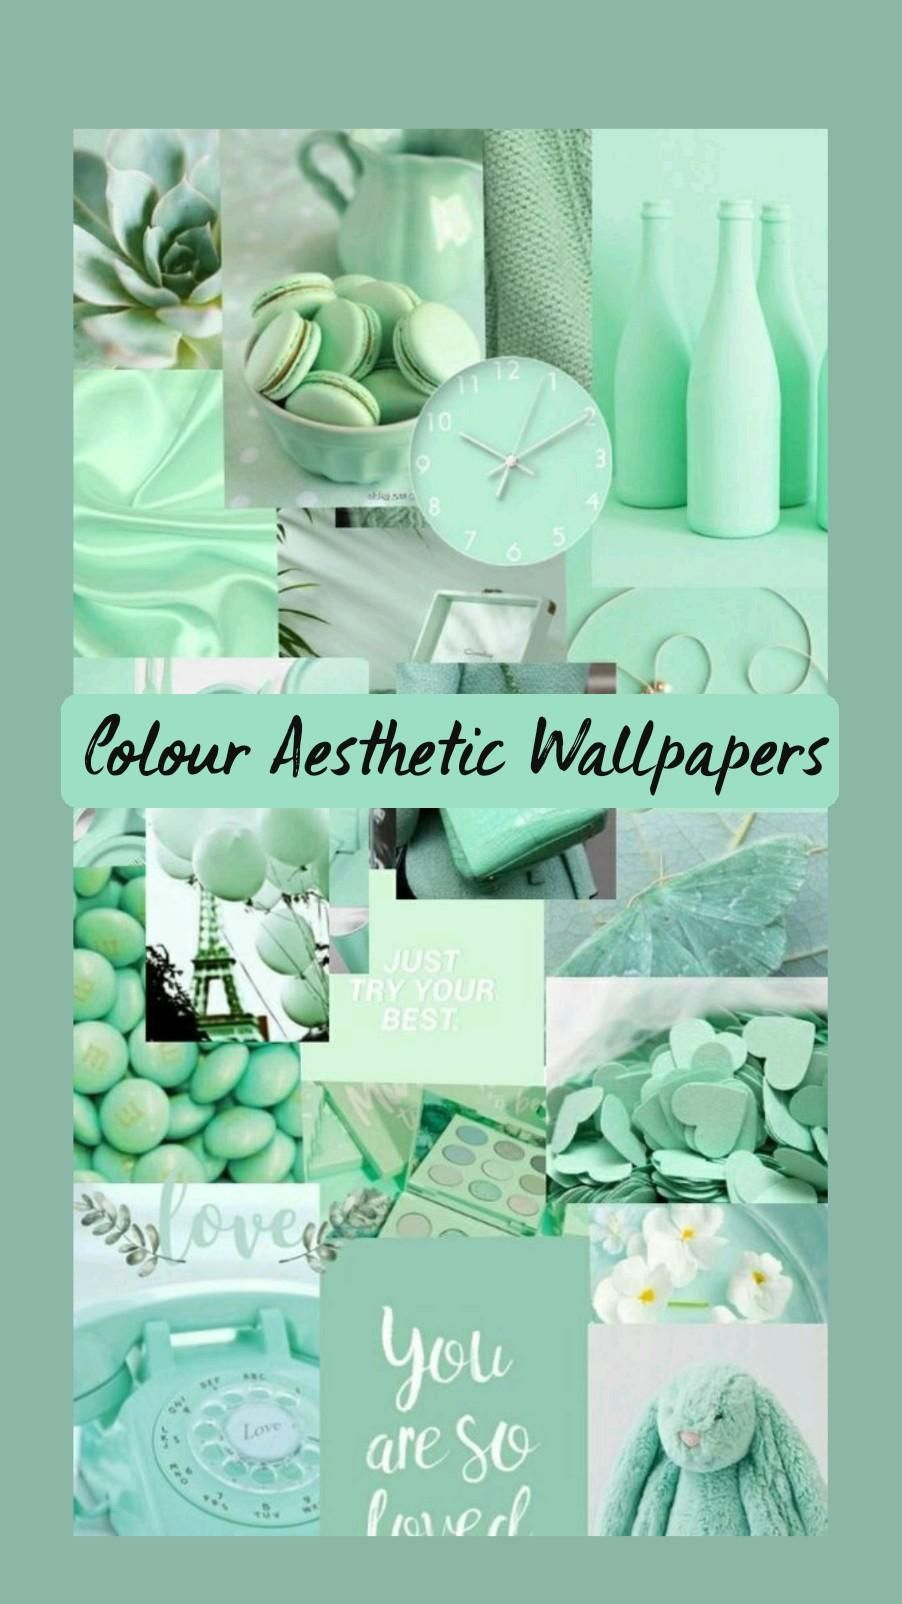 Colour Aesthetic Wallpapers